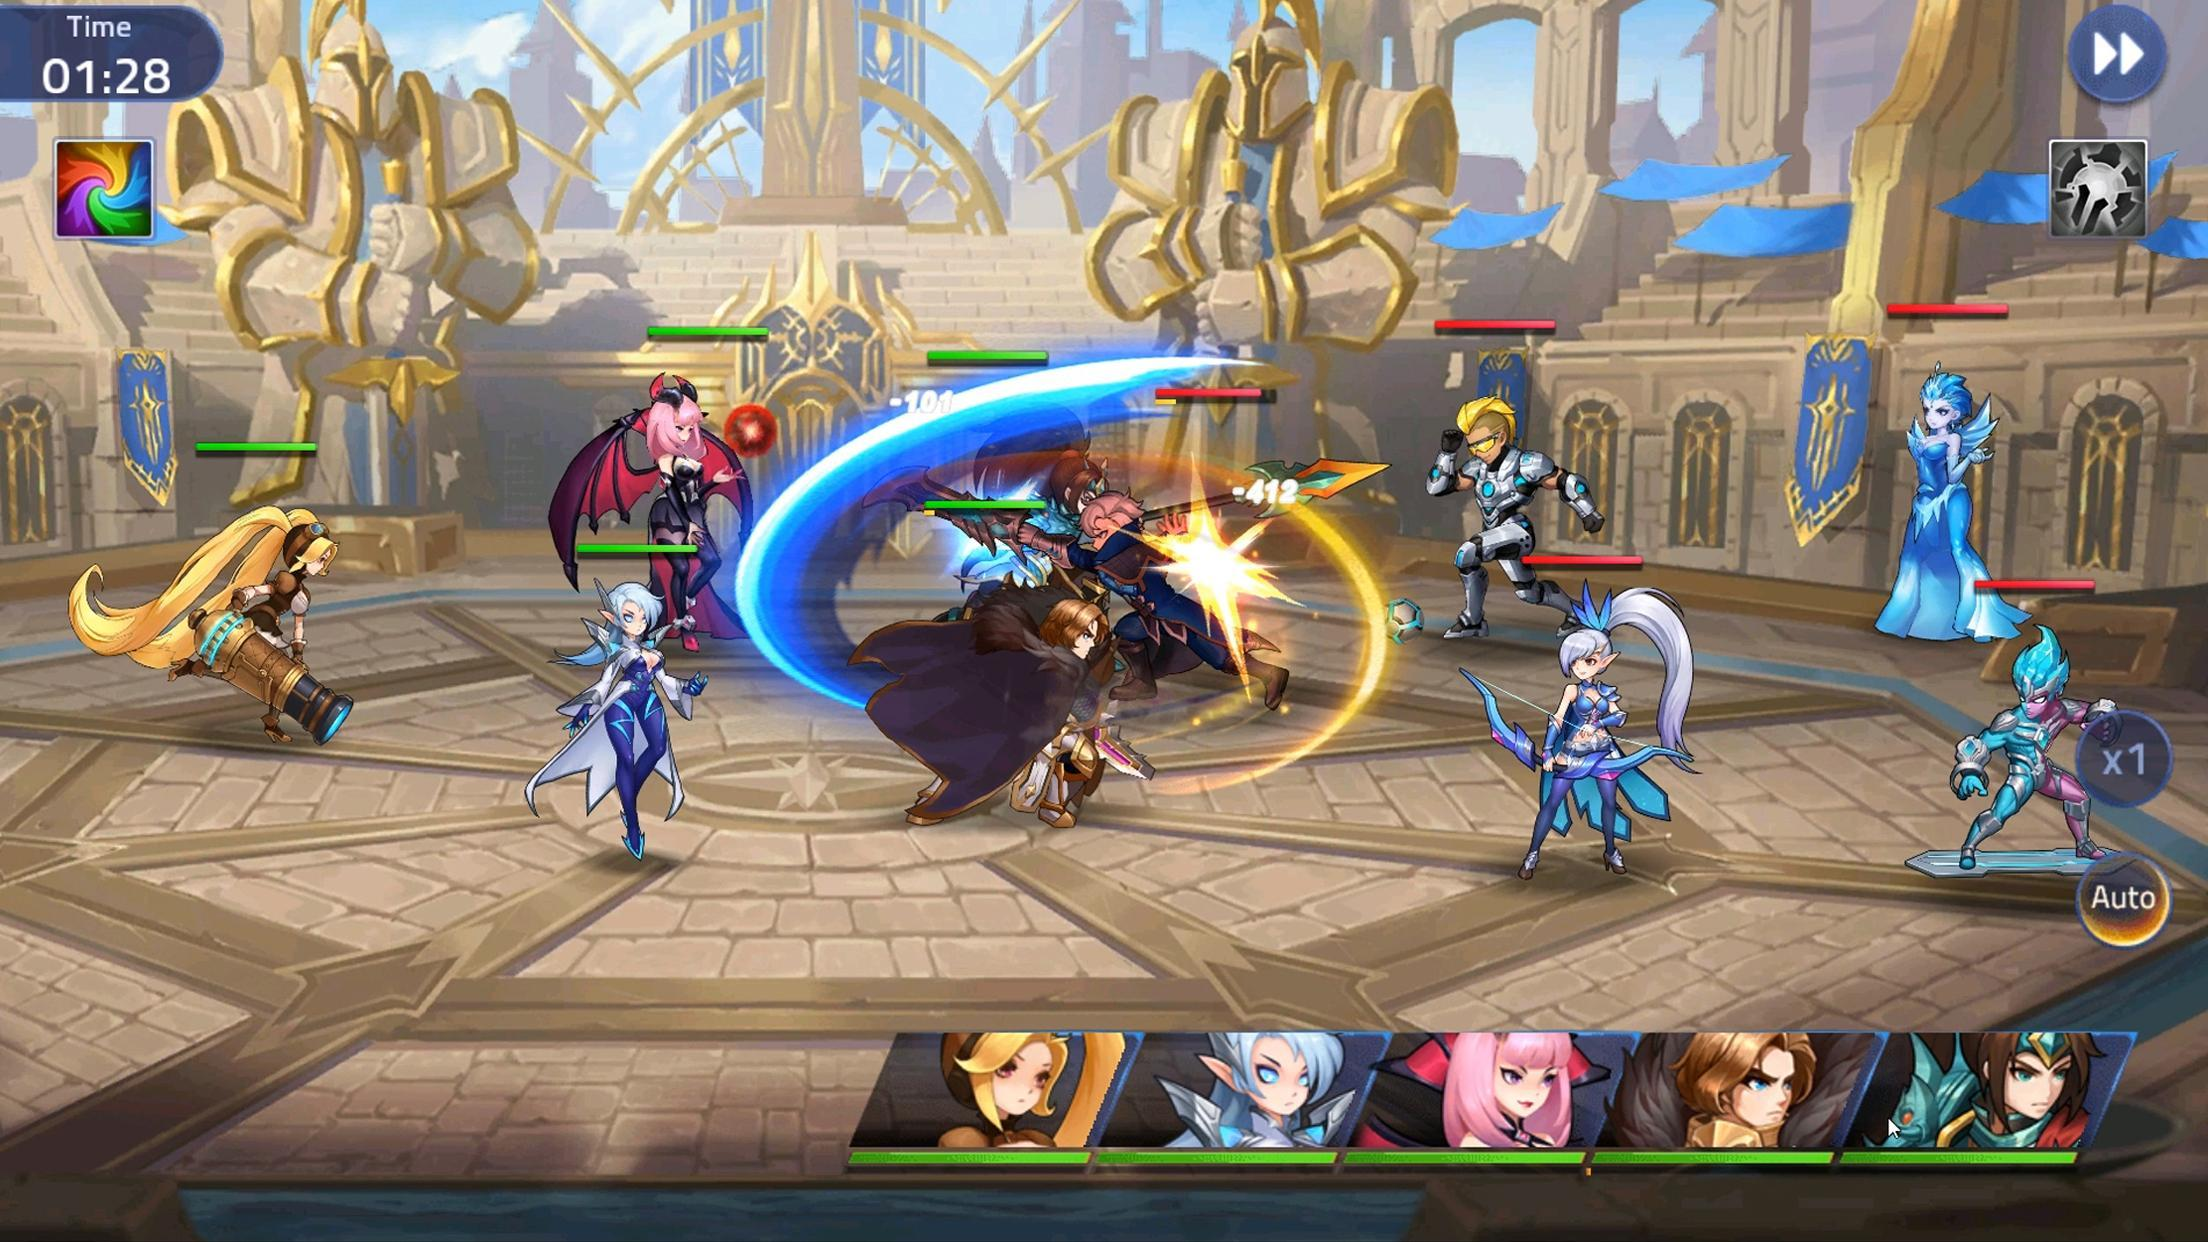 Mobile Legends Adventure Android APK